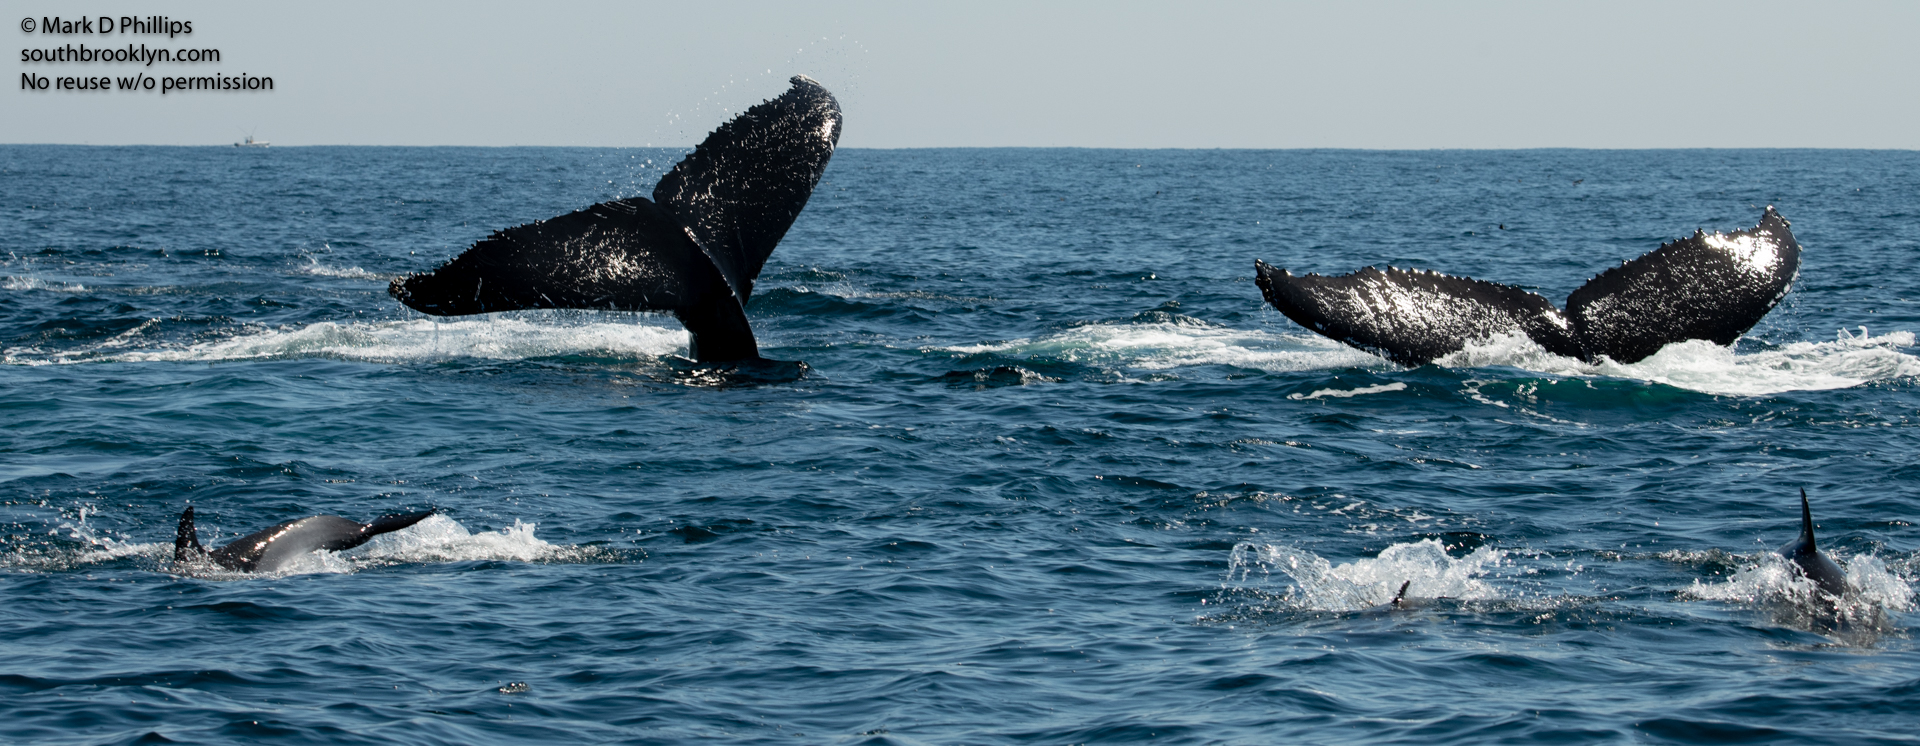 Whales and dolphins in feeding frenzy during Fishing trip on August 1, 2020.